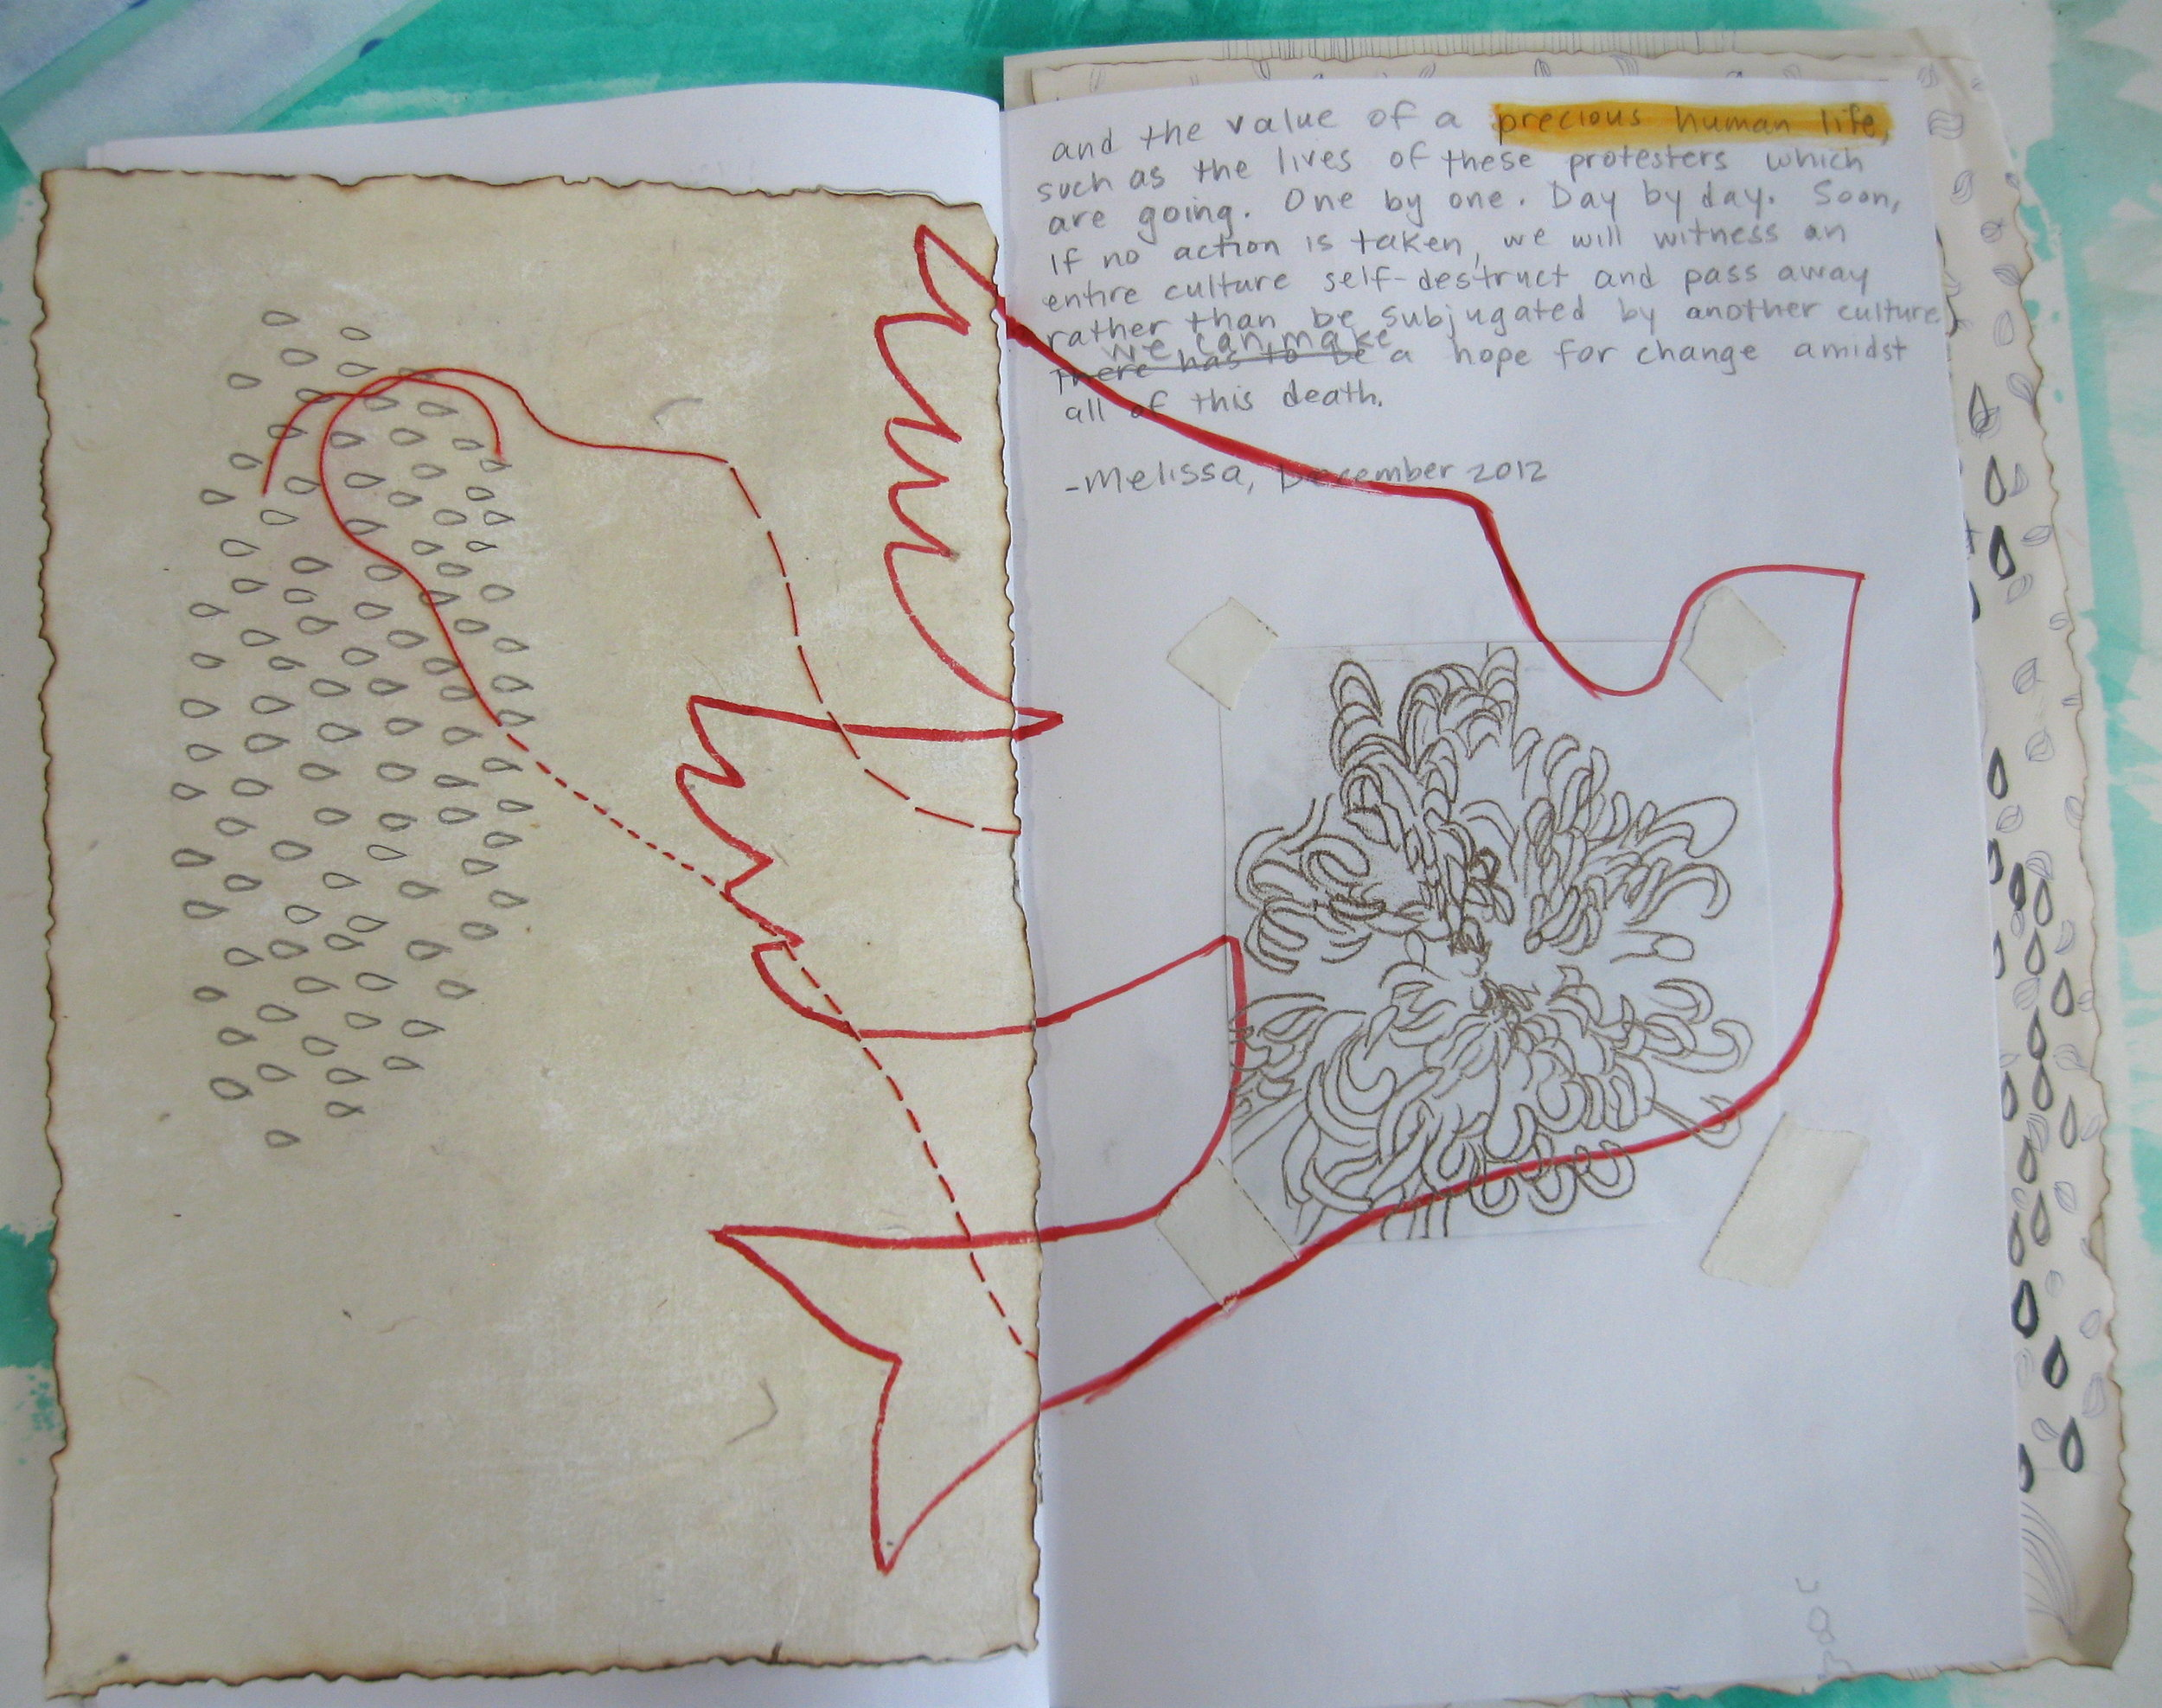 Artist Correspondence, Tibet is Burning